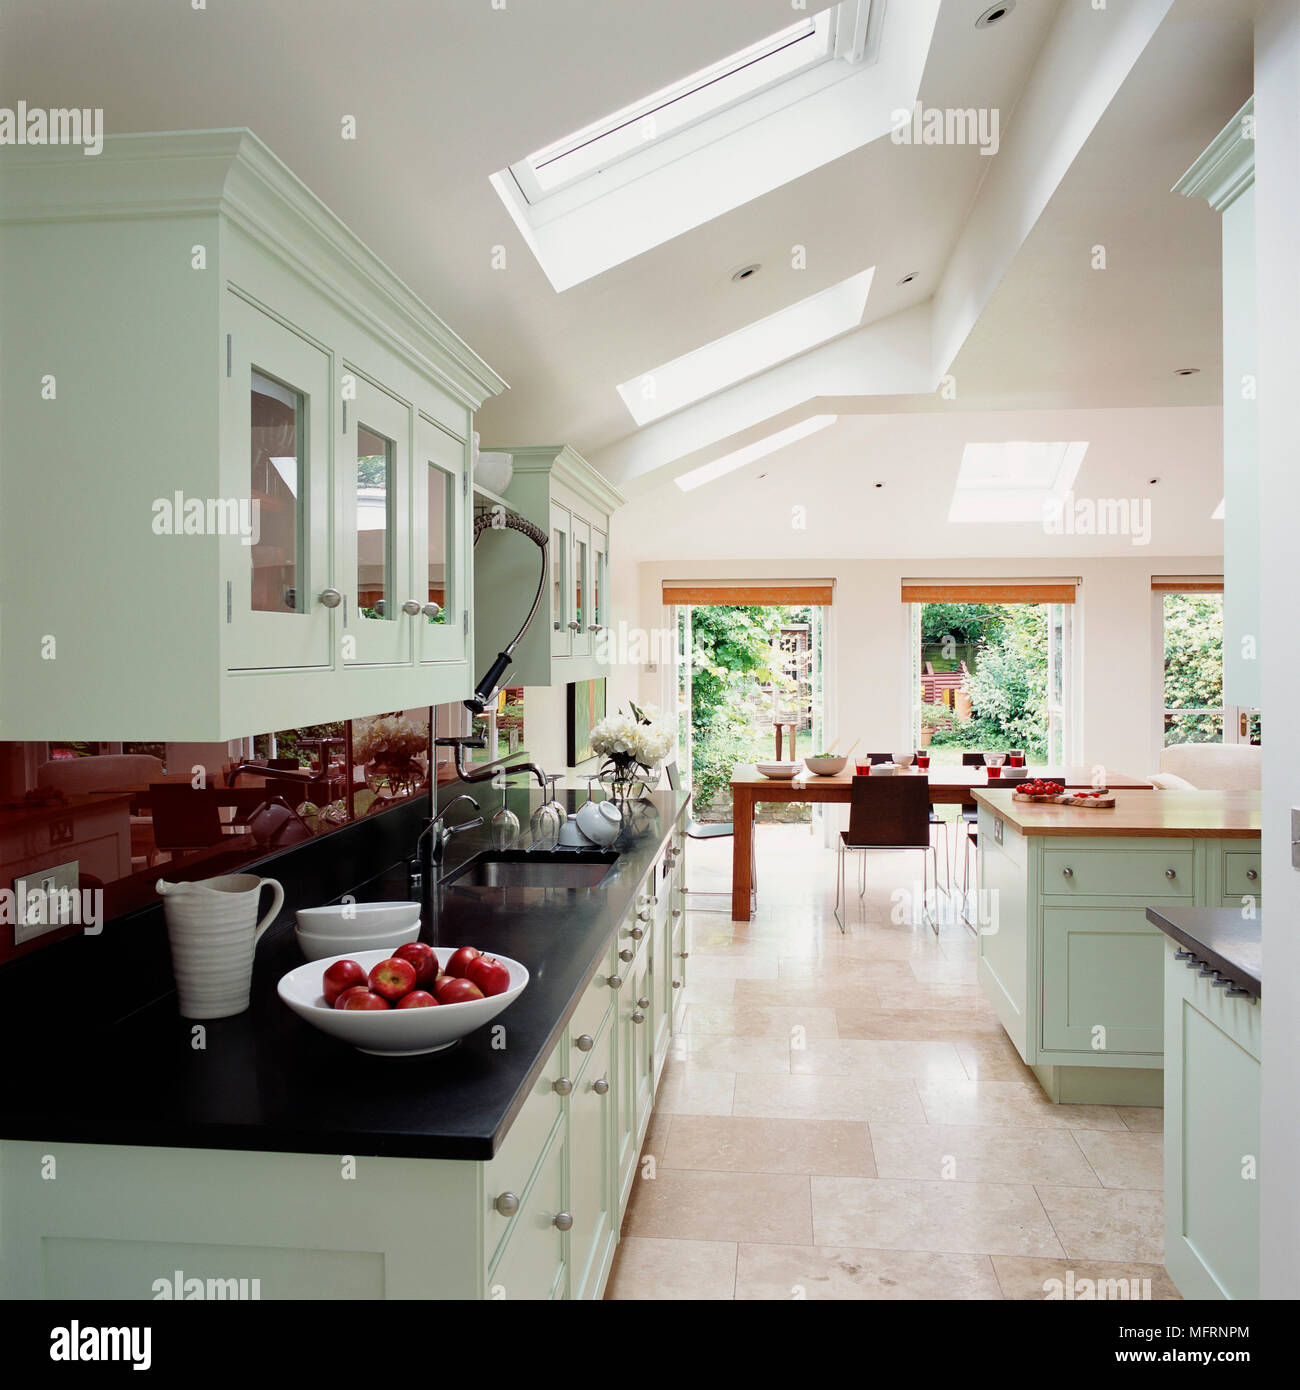 Extractor Fan Kitchen Country Stock Photos & Extractor Fan